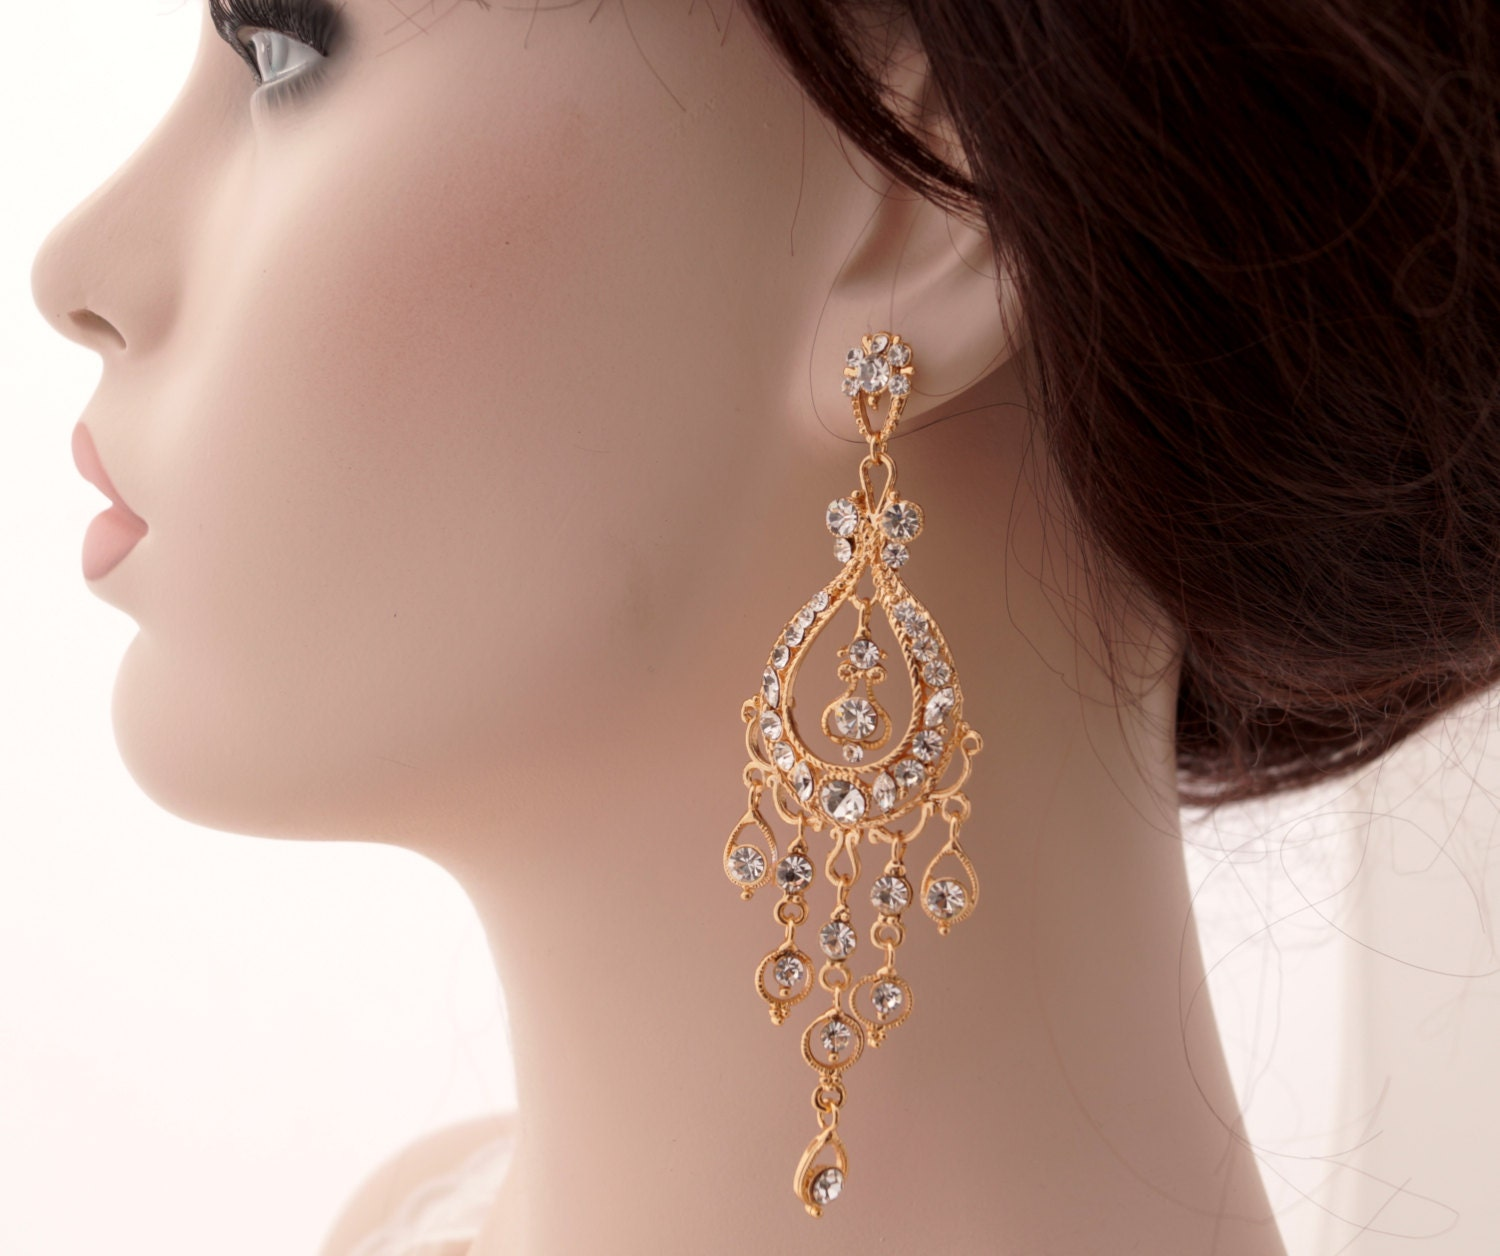 cluster bellagio bride bridal earrings cassandra model close up anna on earring